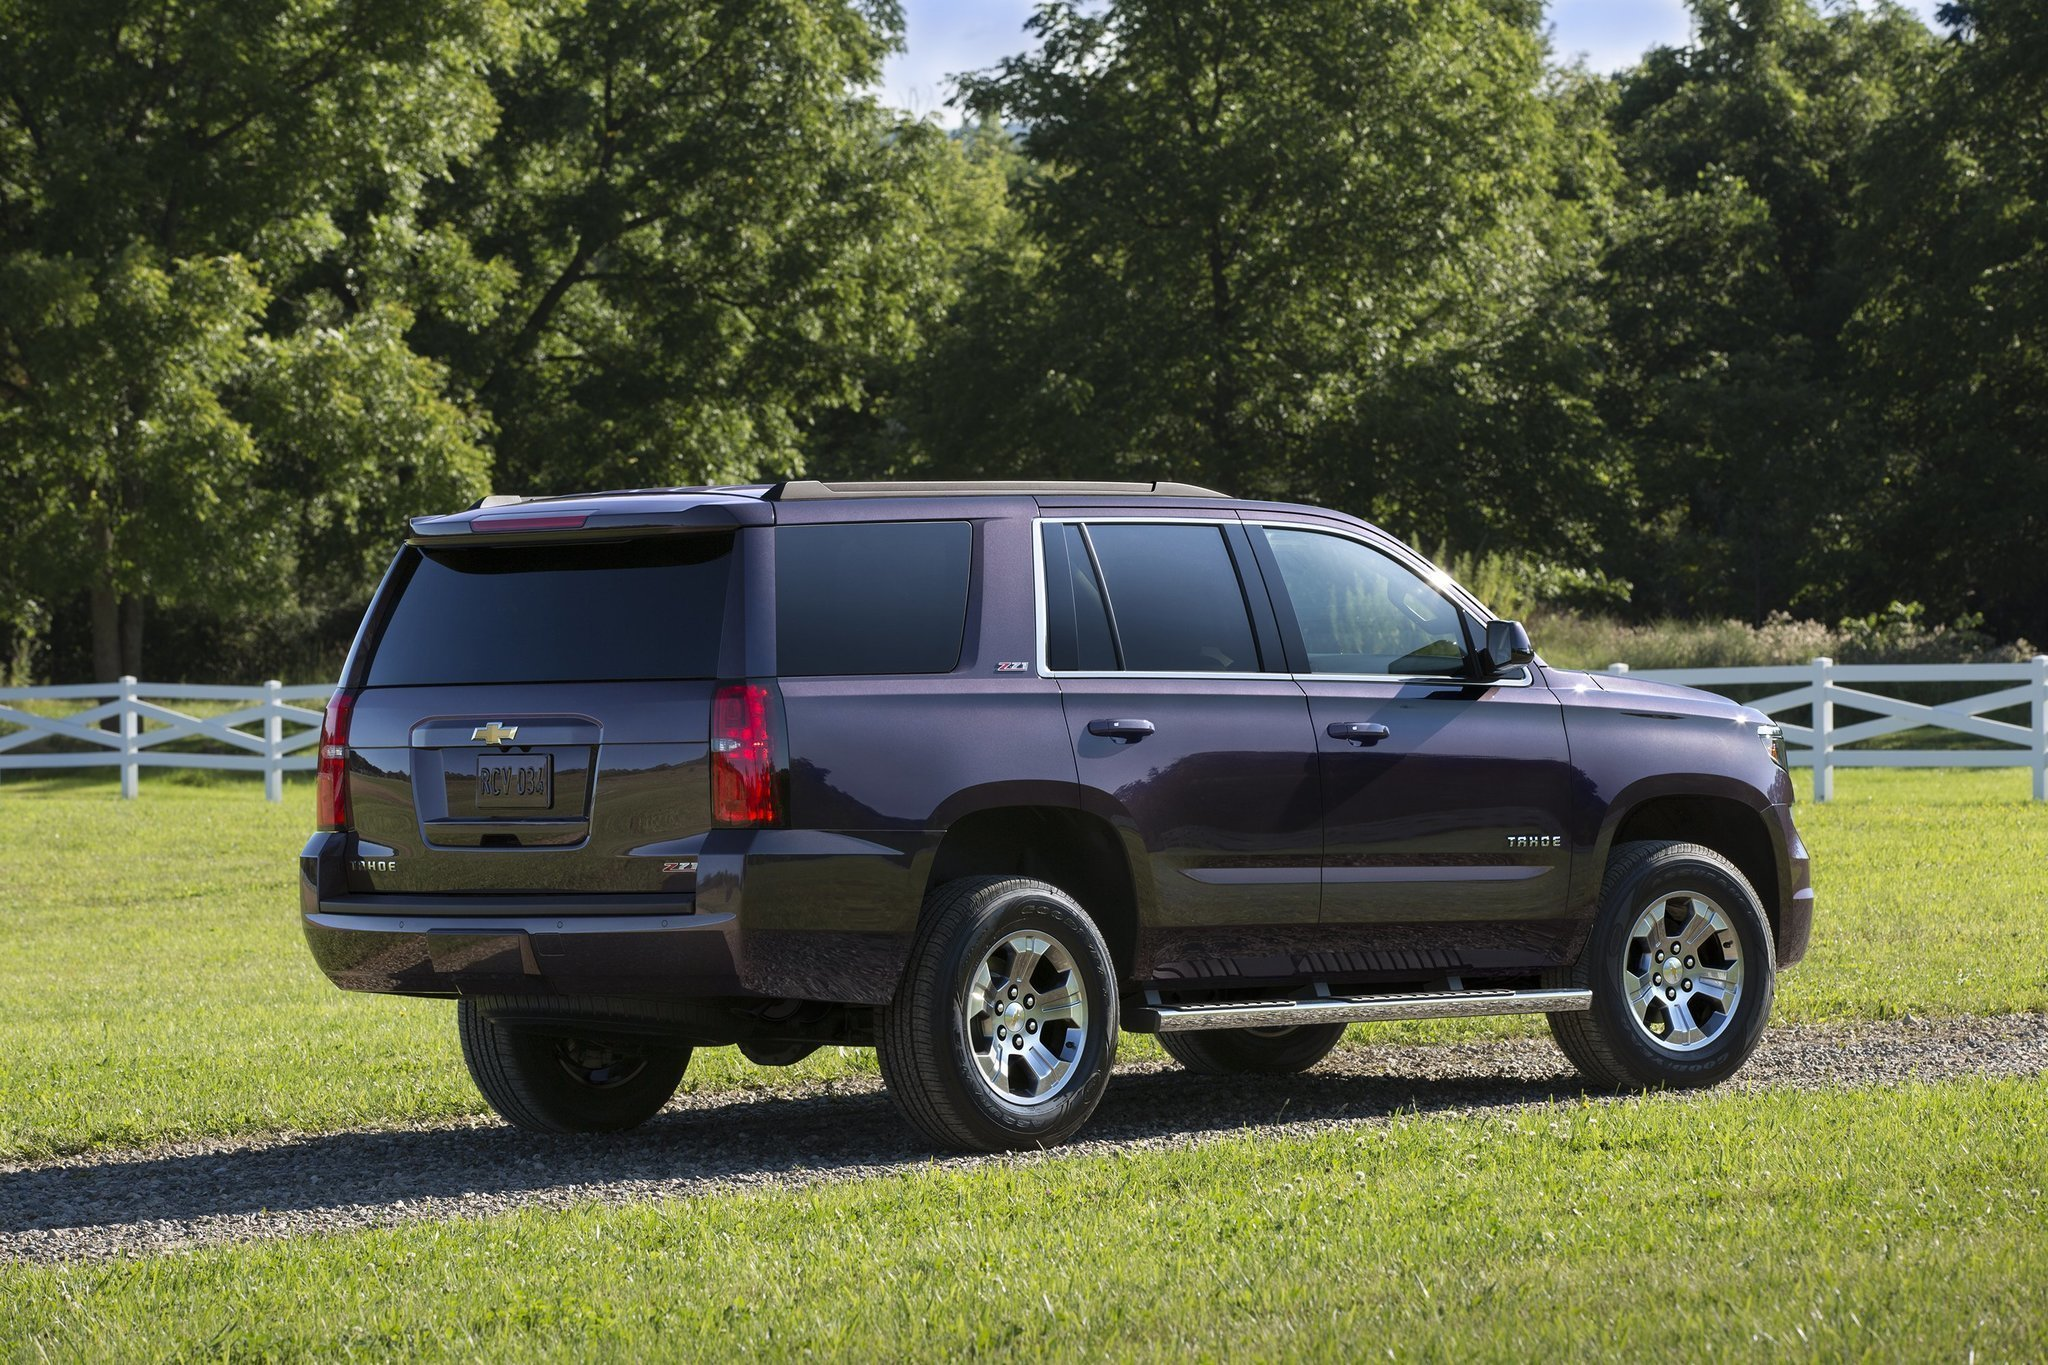 2016 Chevrolet Tahoe remains best selling full size SUV The San